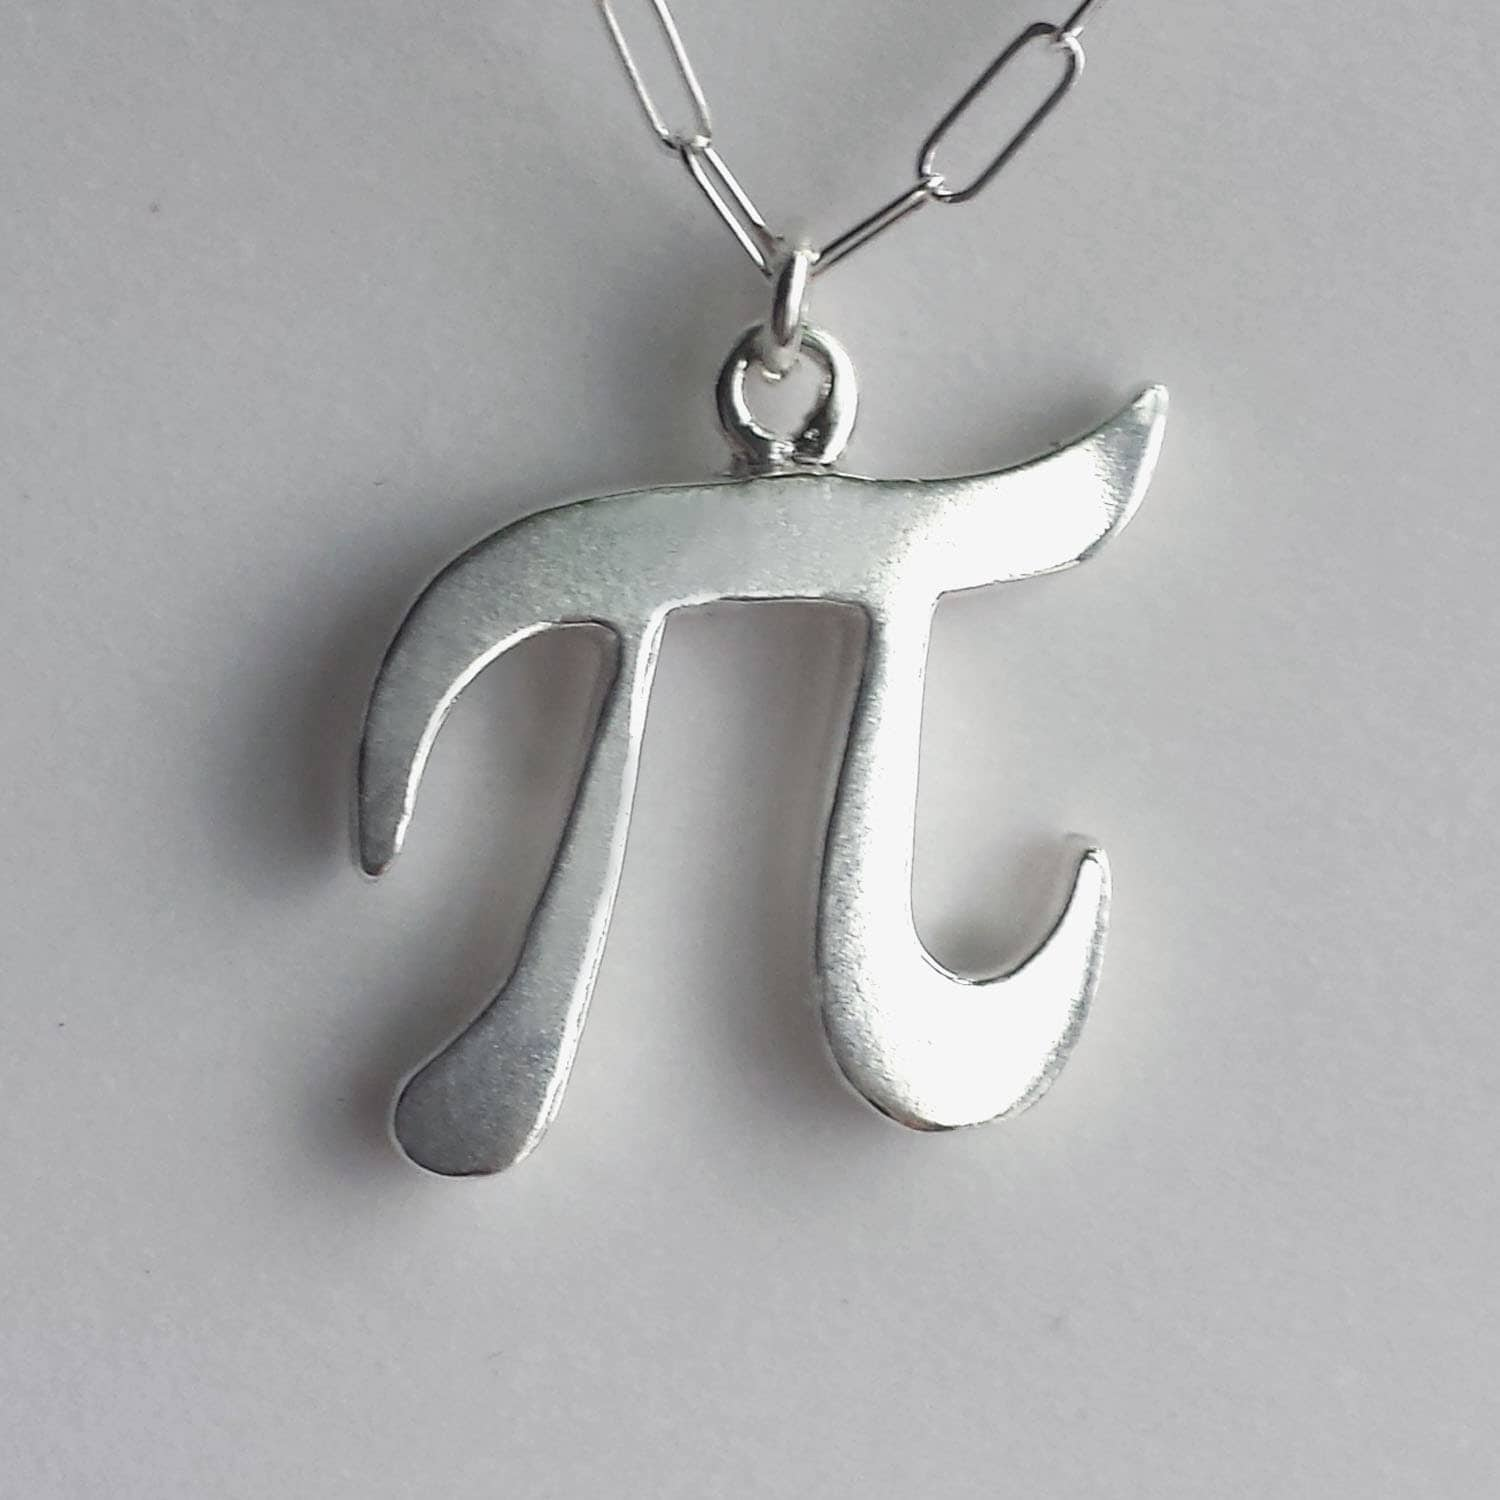 pi necklace sterling silver geekery solid silver pi